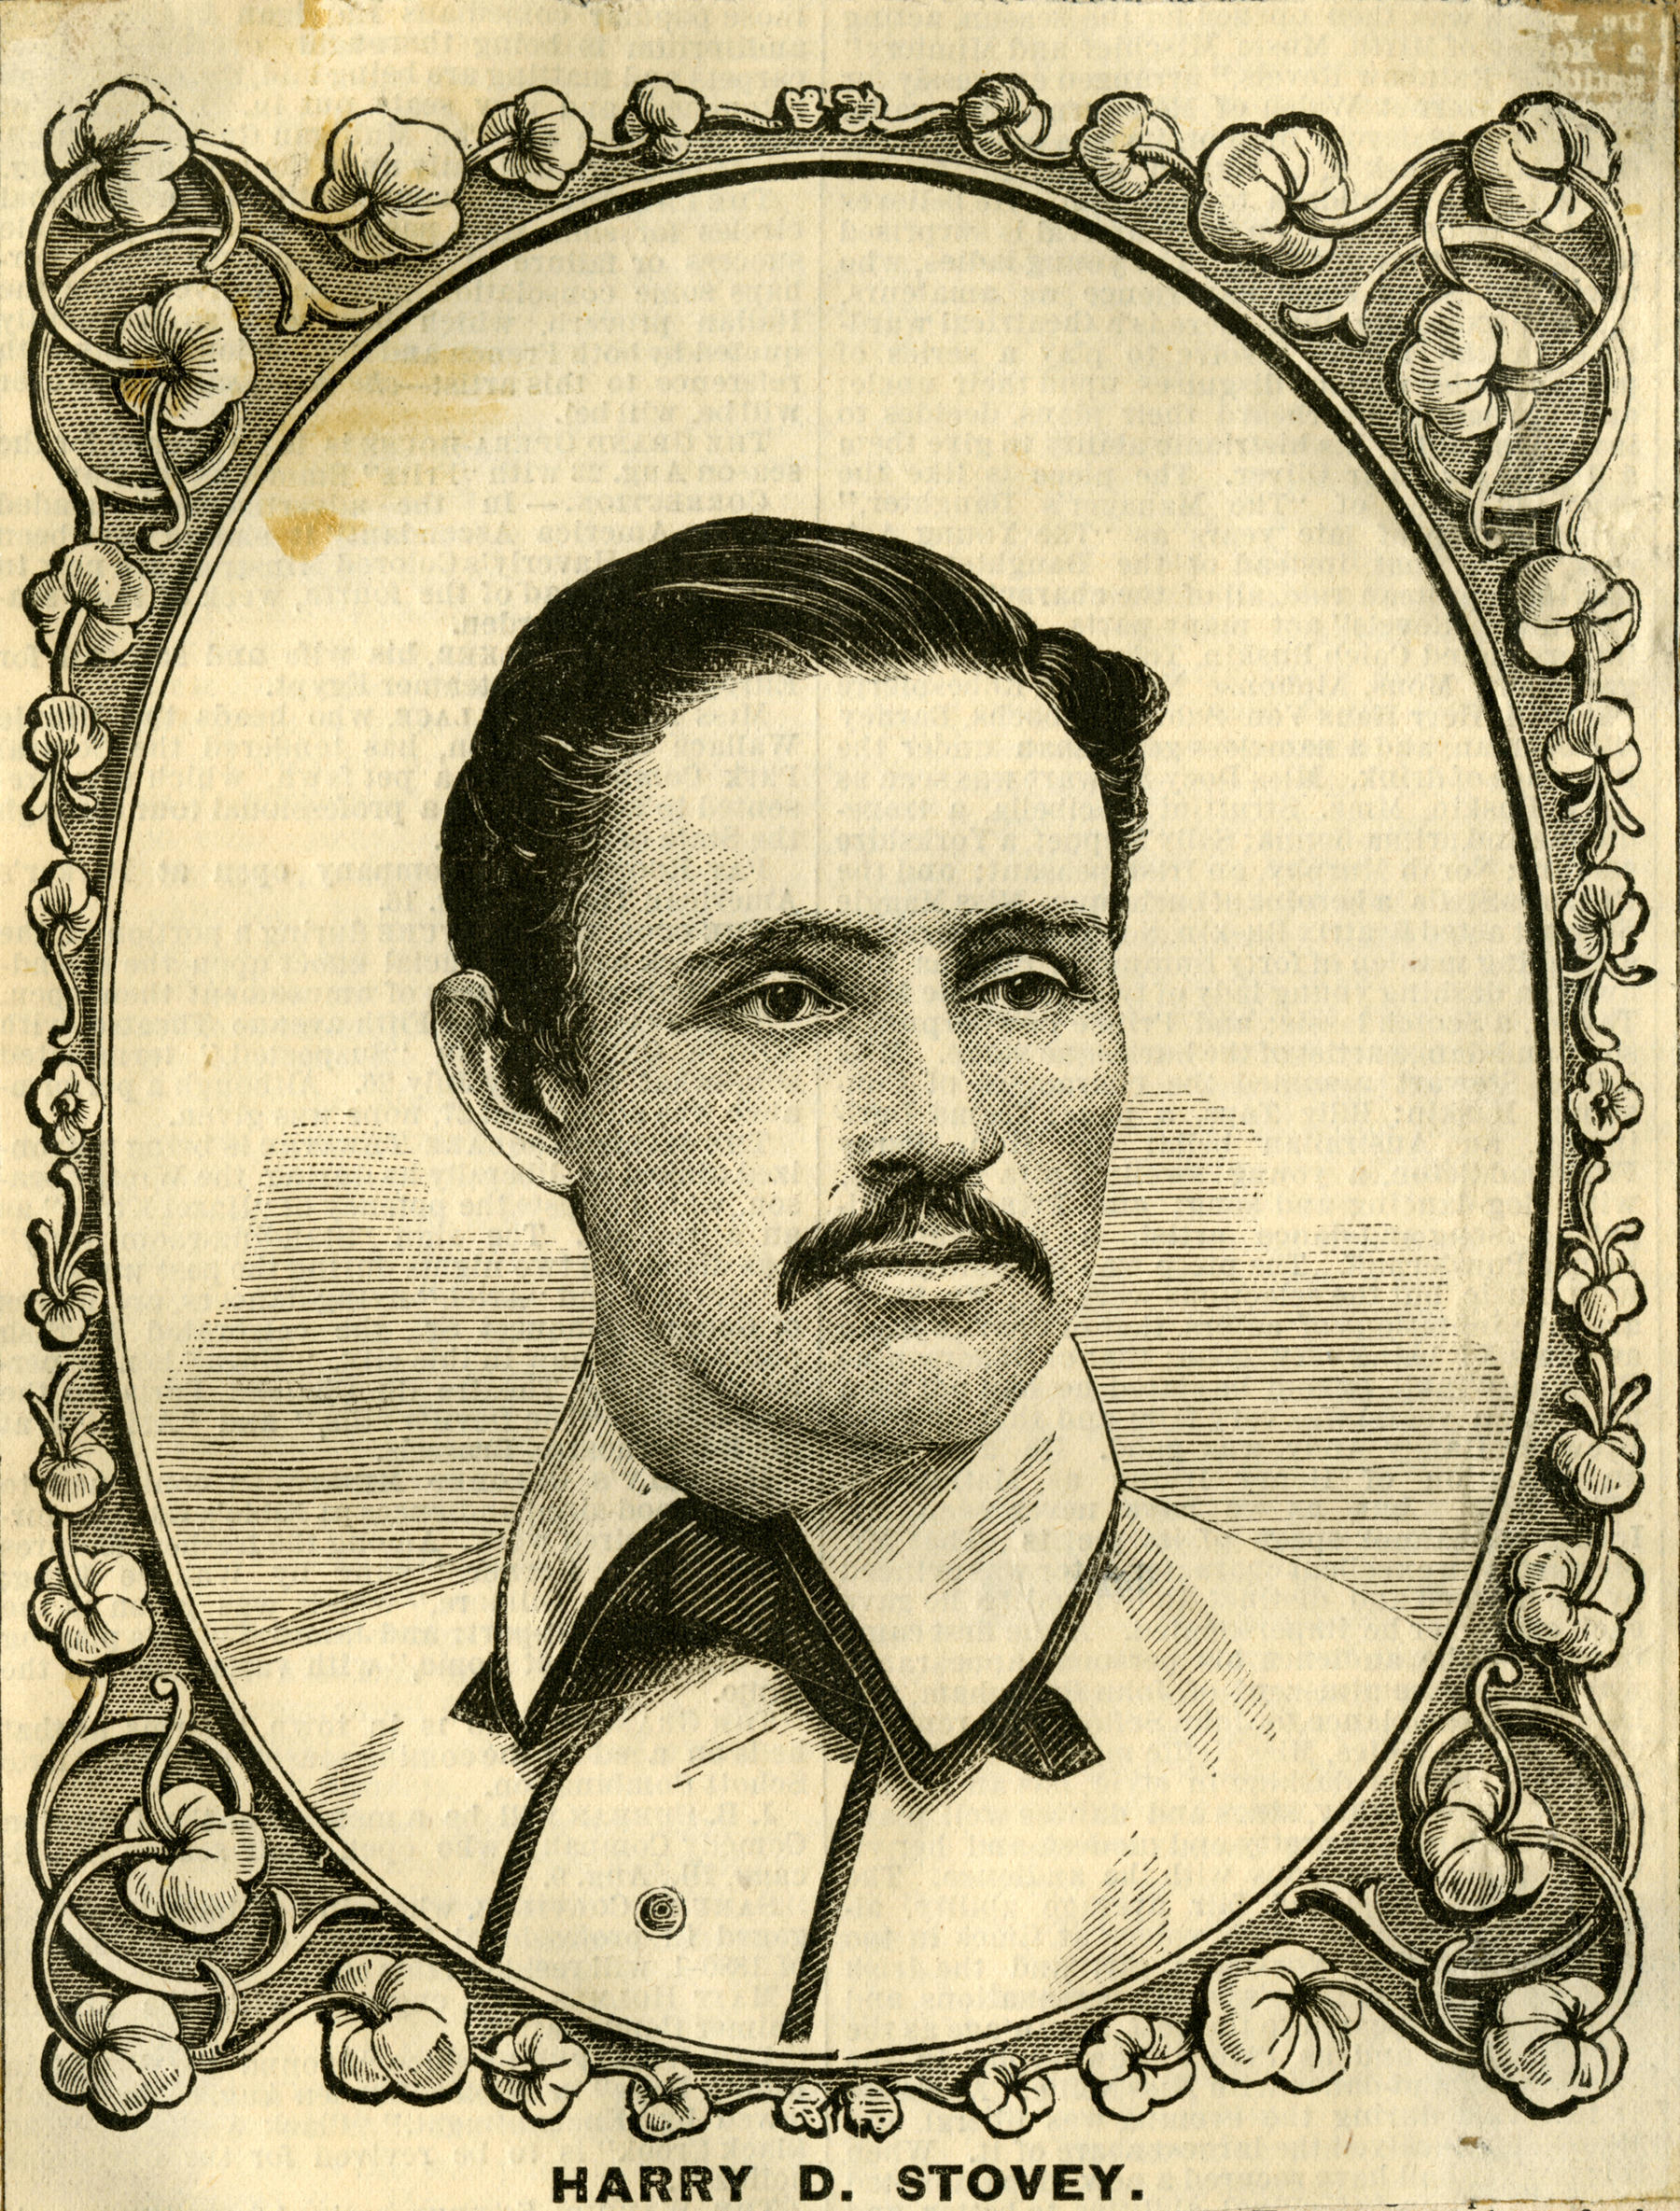 Wood engraving depicting Harry Stovey published in the New York Clipper August 7, 1880. BA SCR 57 (National Baseball Hall of Fame Library)